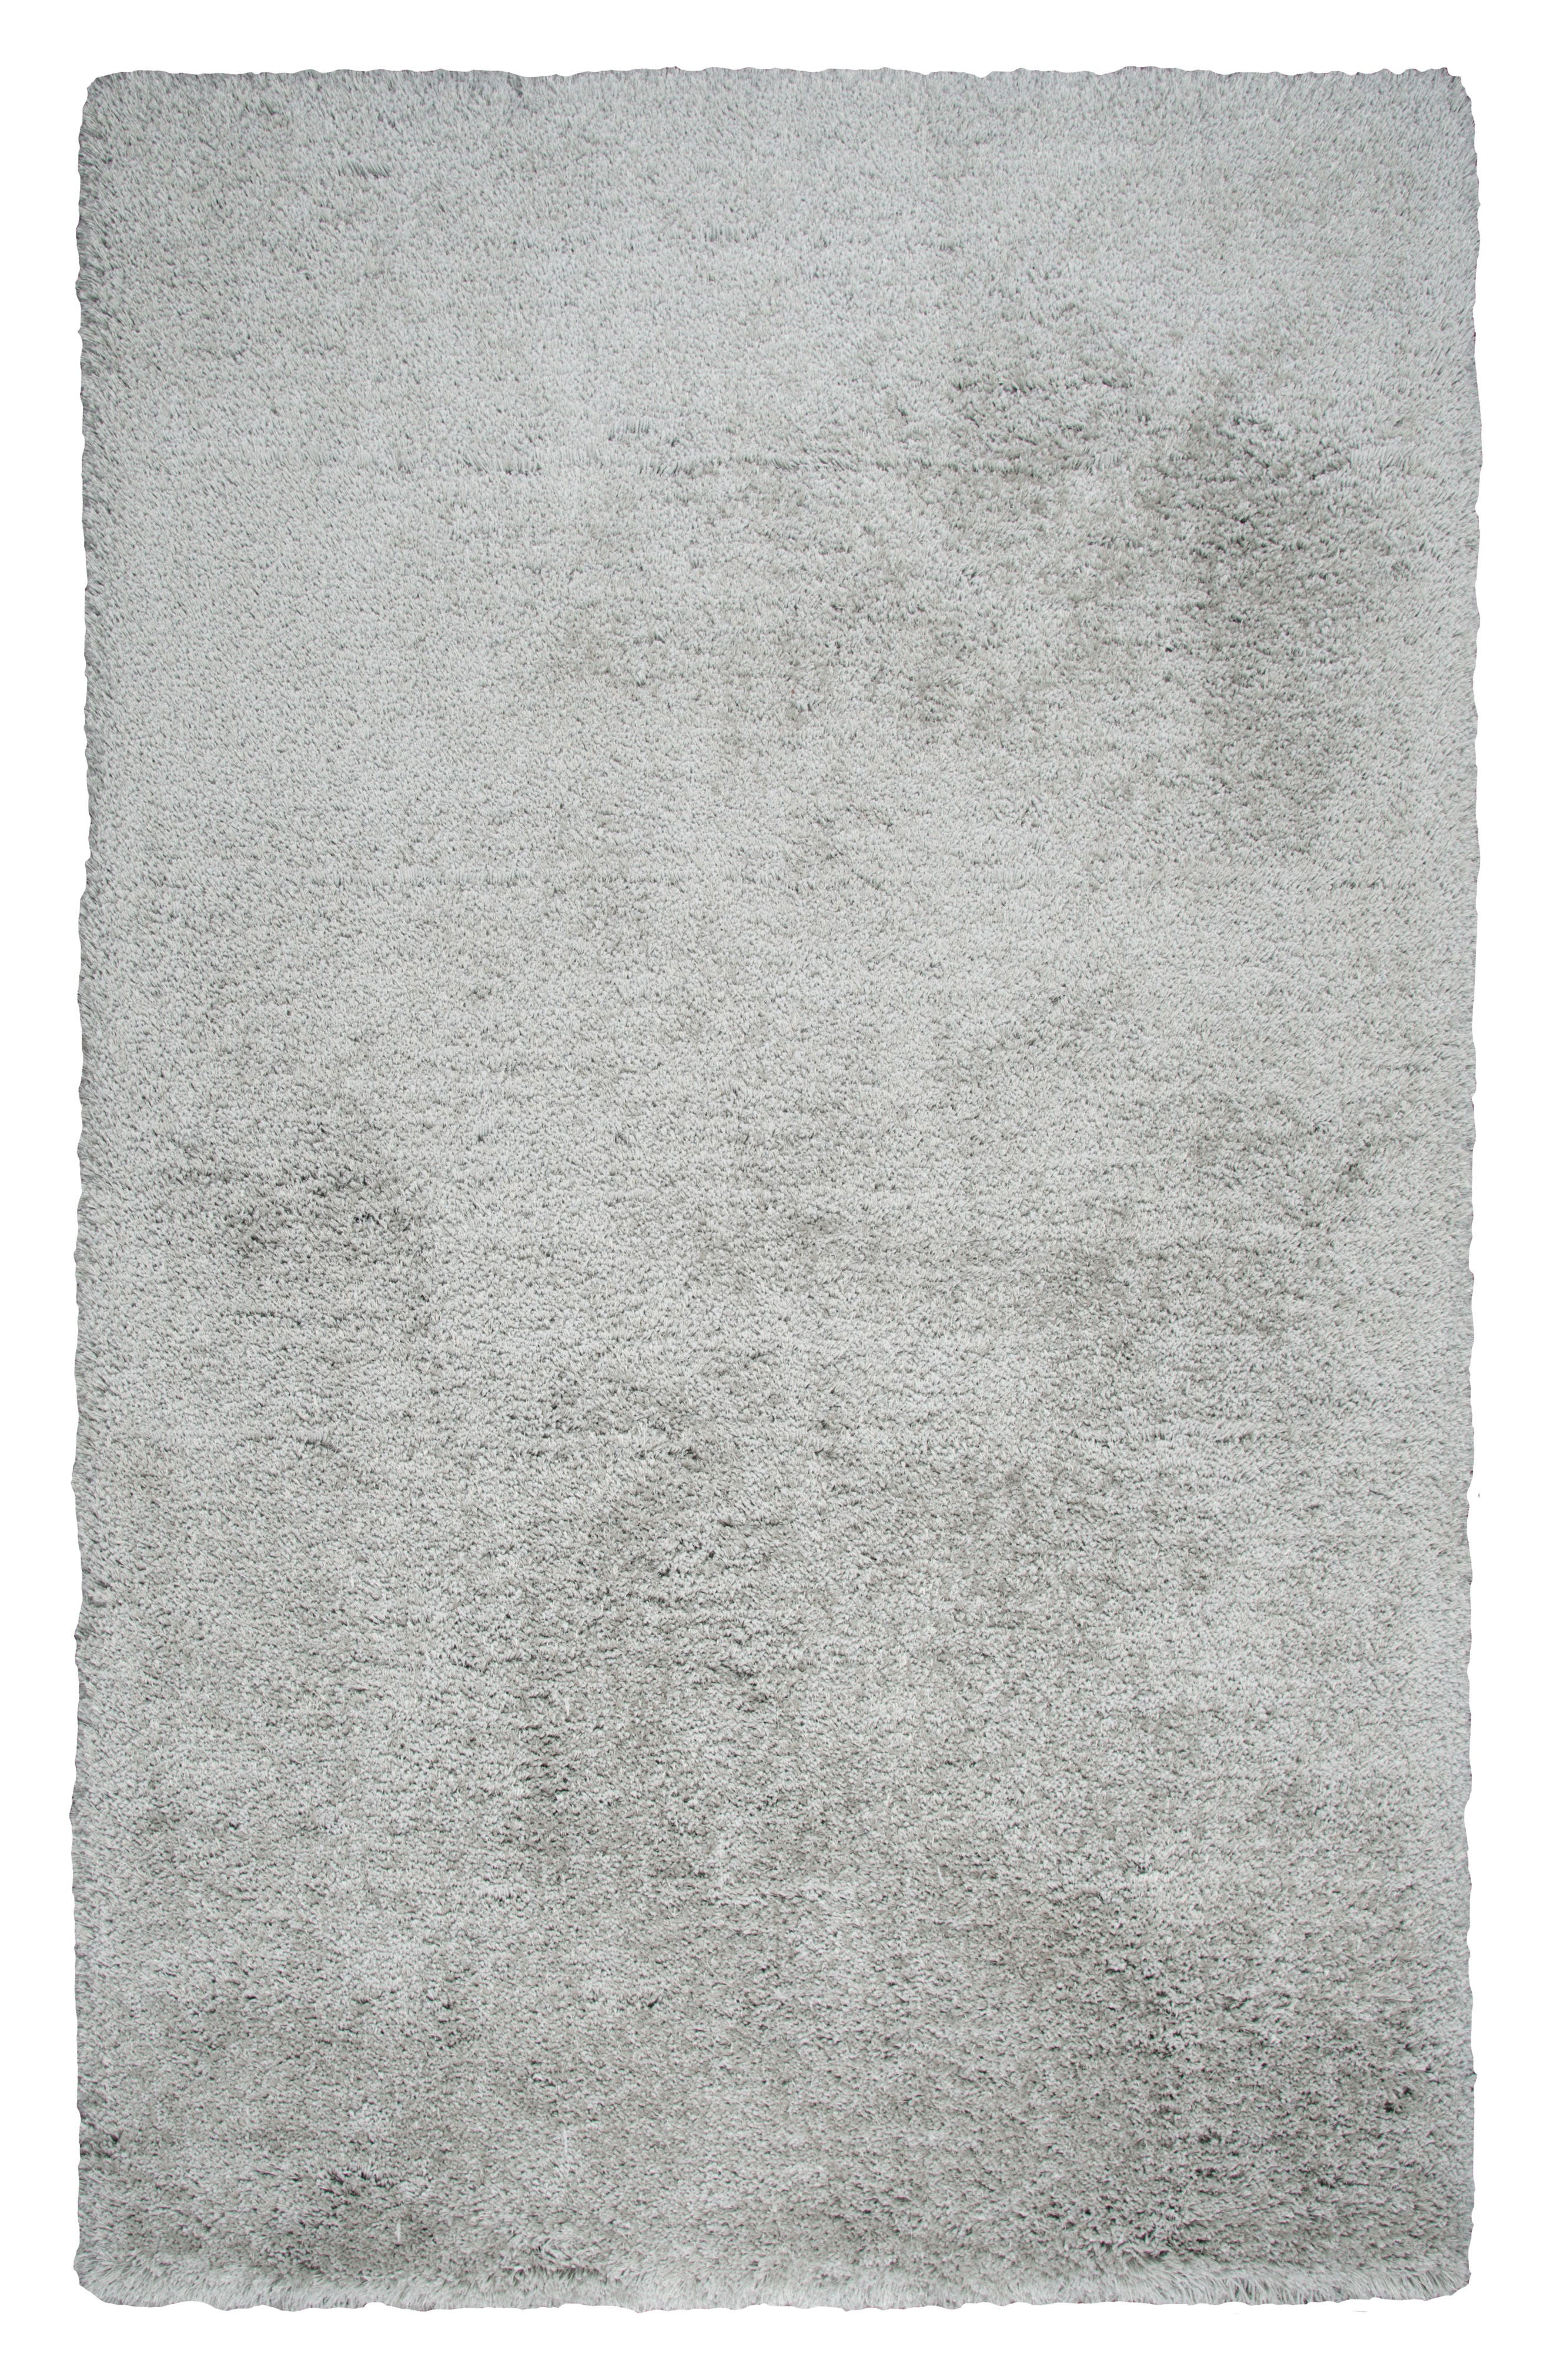 Commons Bound Rug,                         Main,                         color, 040